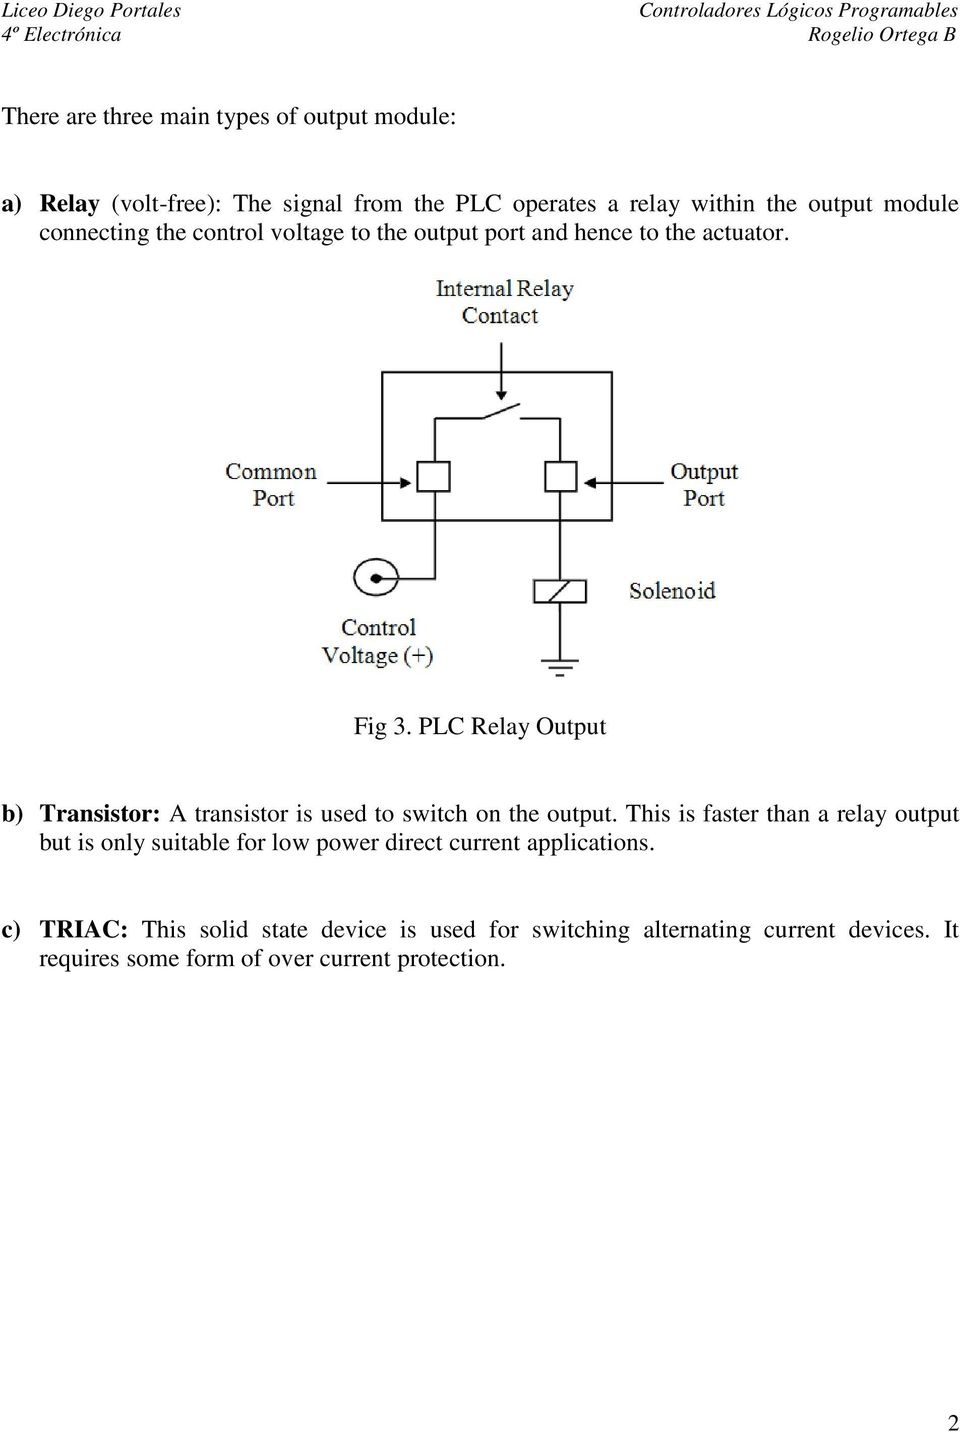 medium resolution of plc relay output b transistor a transistor is used to switch on the output